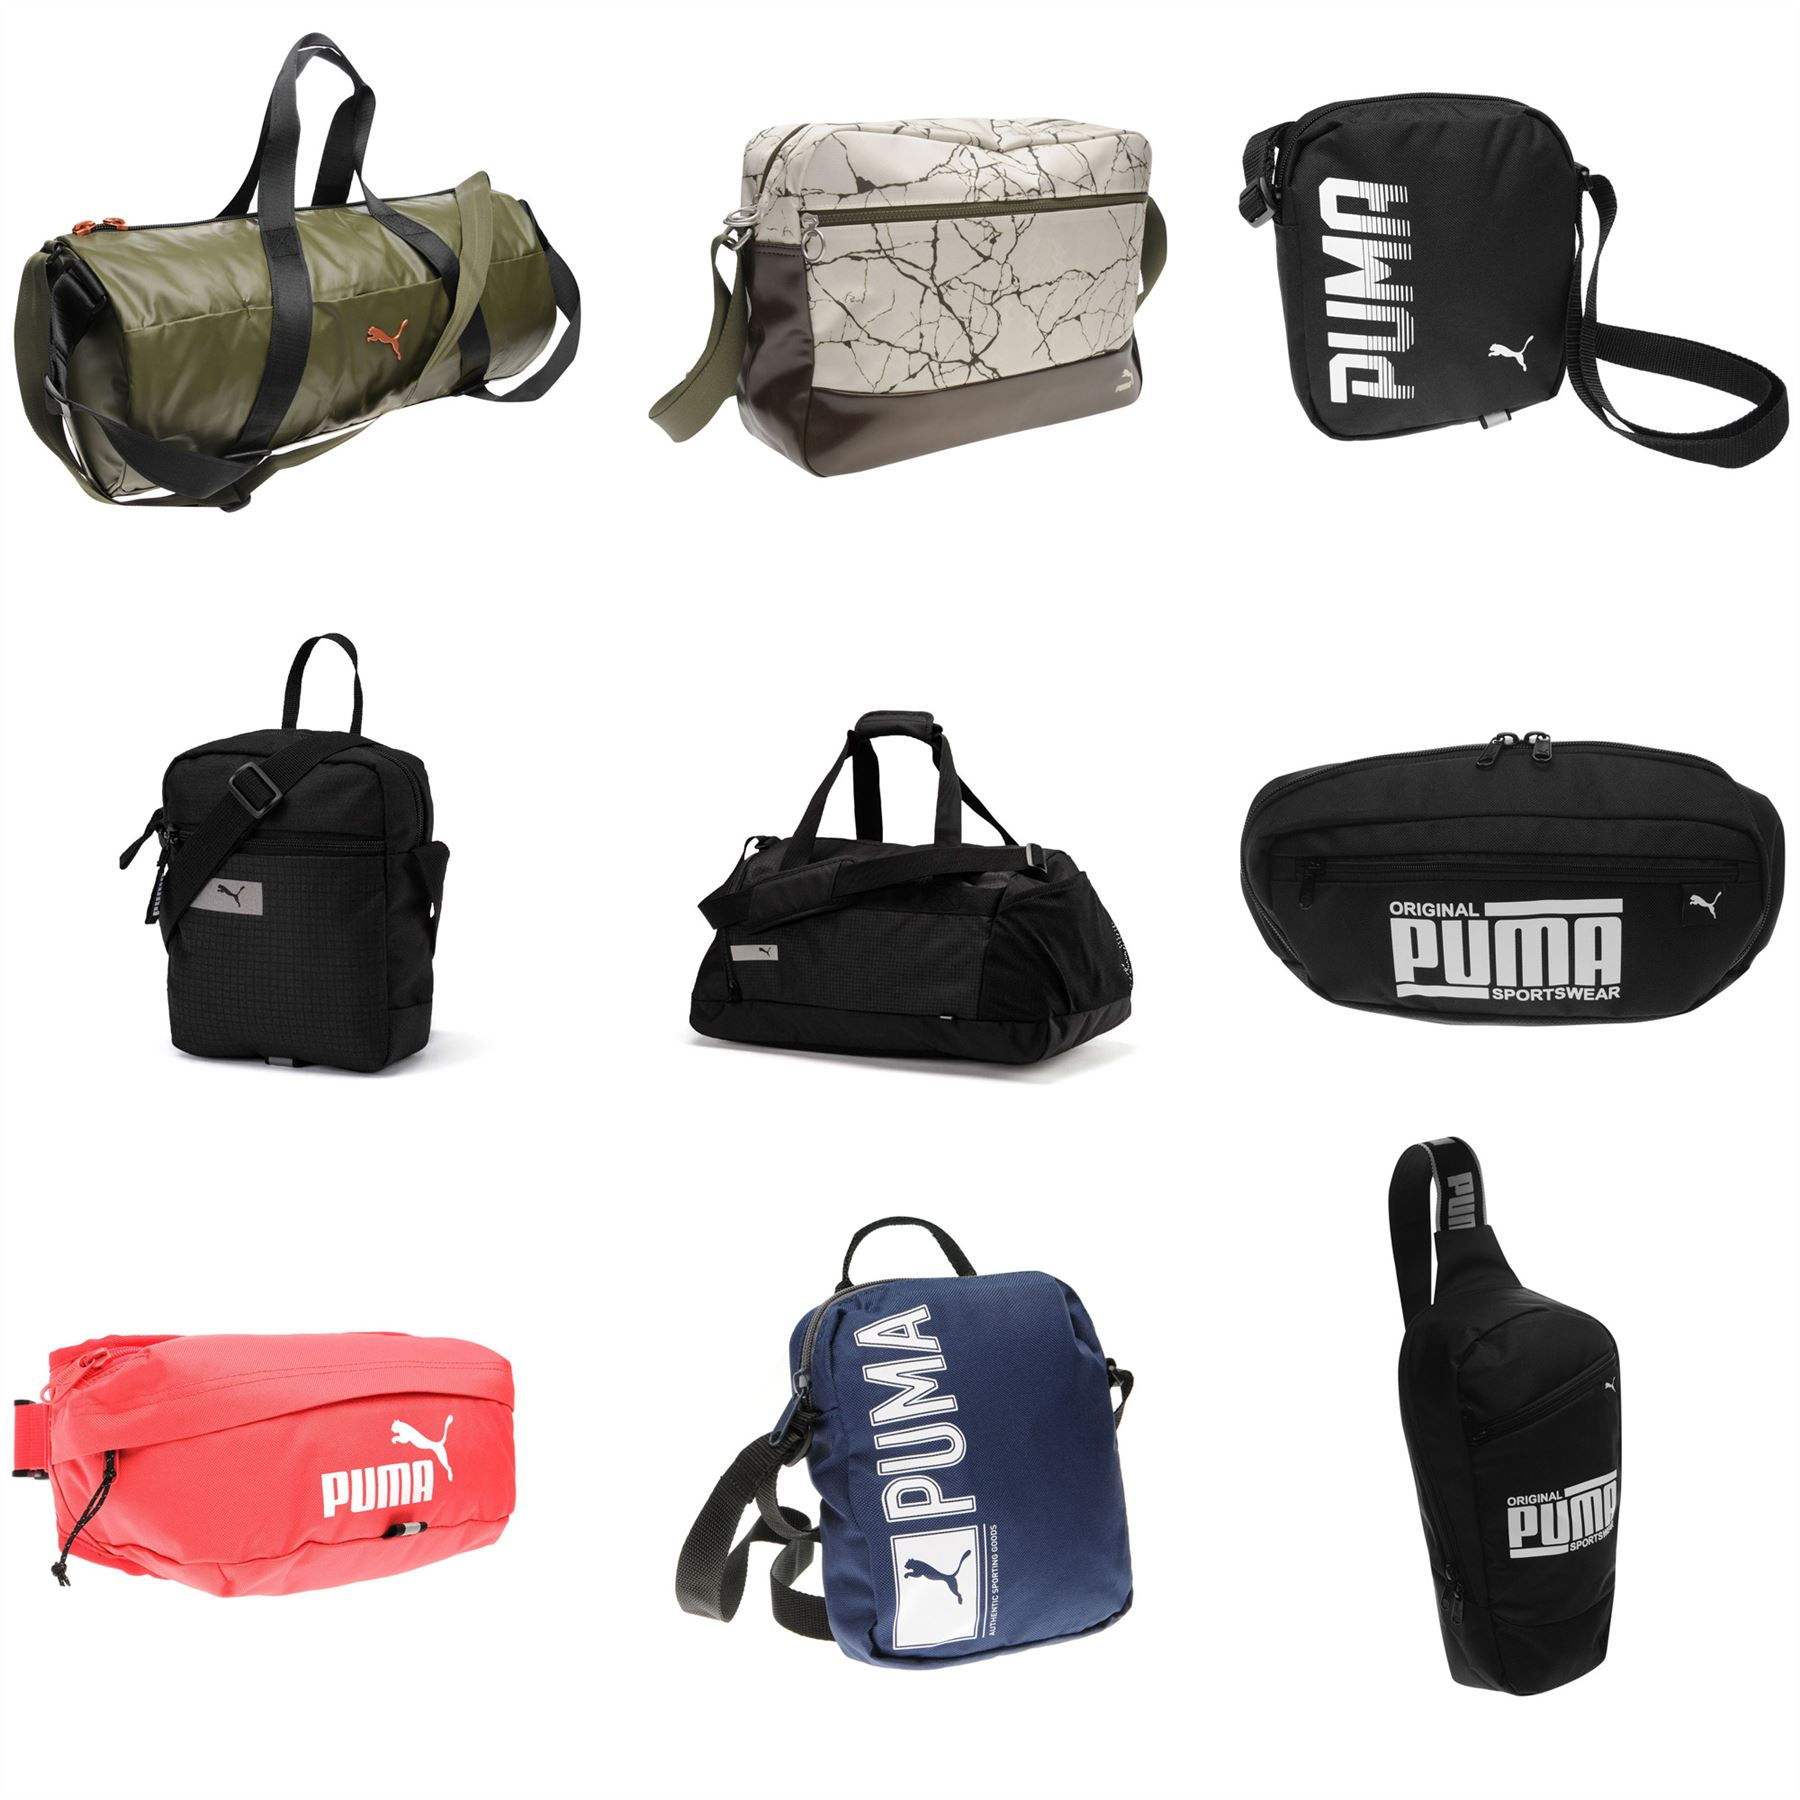 bc38324aae1c Details about Puma Bags Waist Pack Gadget Bag Holdall Cross Body Bags  Shoulder Bags